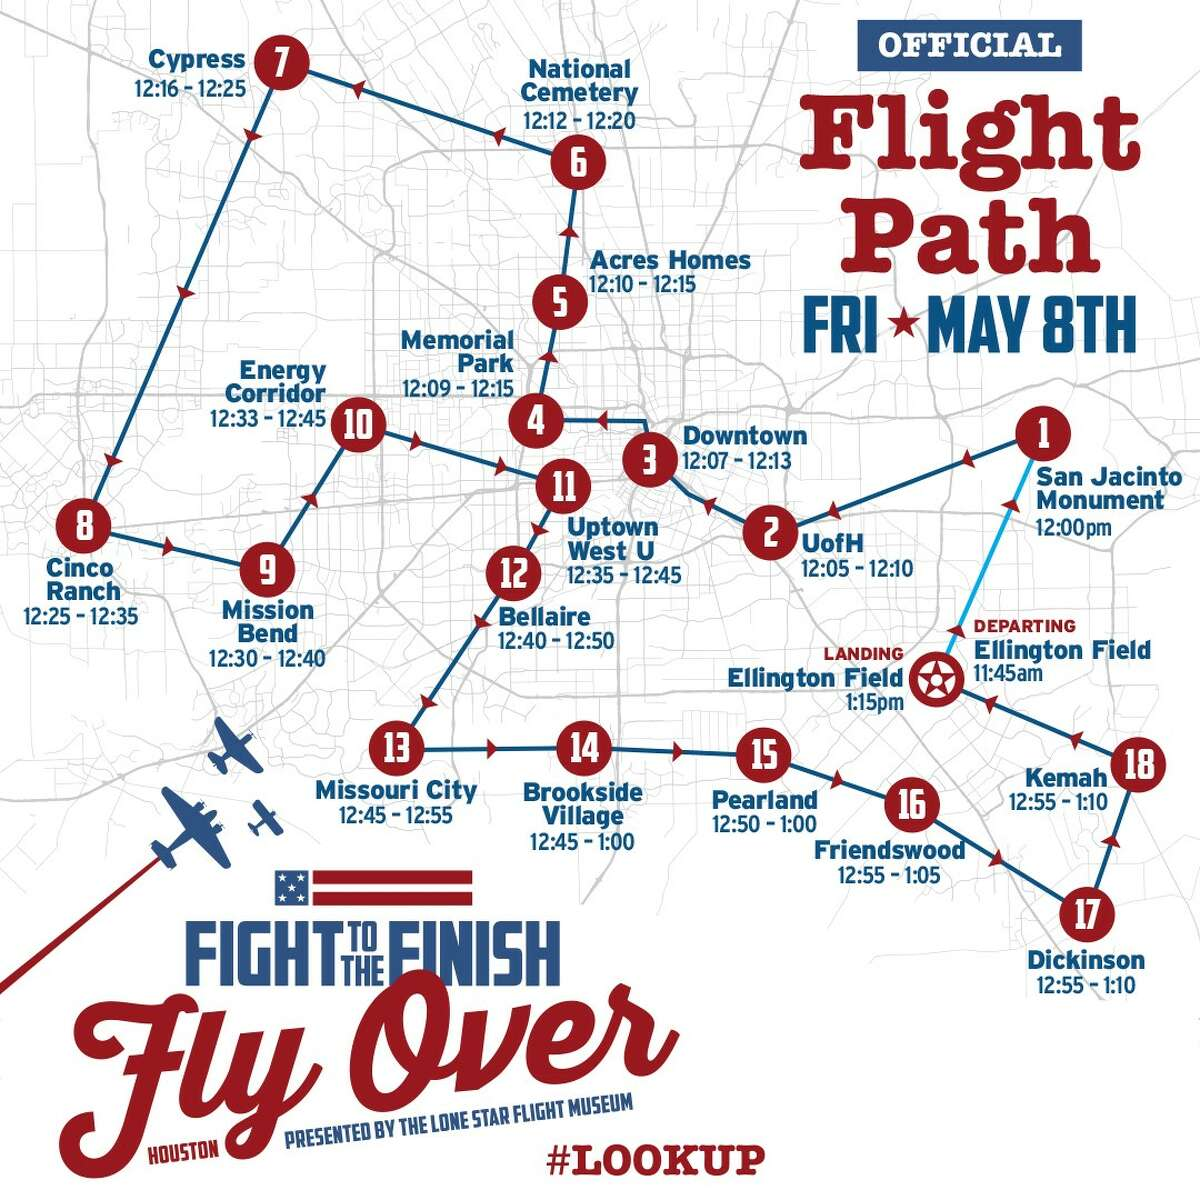 """The """"Fight to Finish"""" flyover will start at 11:45 a.m. on Friday, May 8 from Ellington Airport and fly a 120-mile flight plan over the Greater Houston area. The flight is said to last just over an hour, returning to Ellington around 1 p.m. Cites such as Pasadena, Pearland, Friendswood, Dickinson, Kemah, Cinco Ranch, and Spring-Cypress, among others, will have a front row seat to the flyover."""